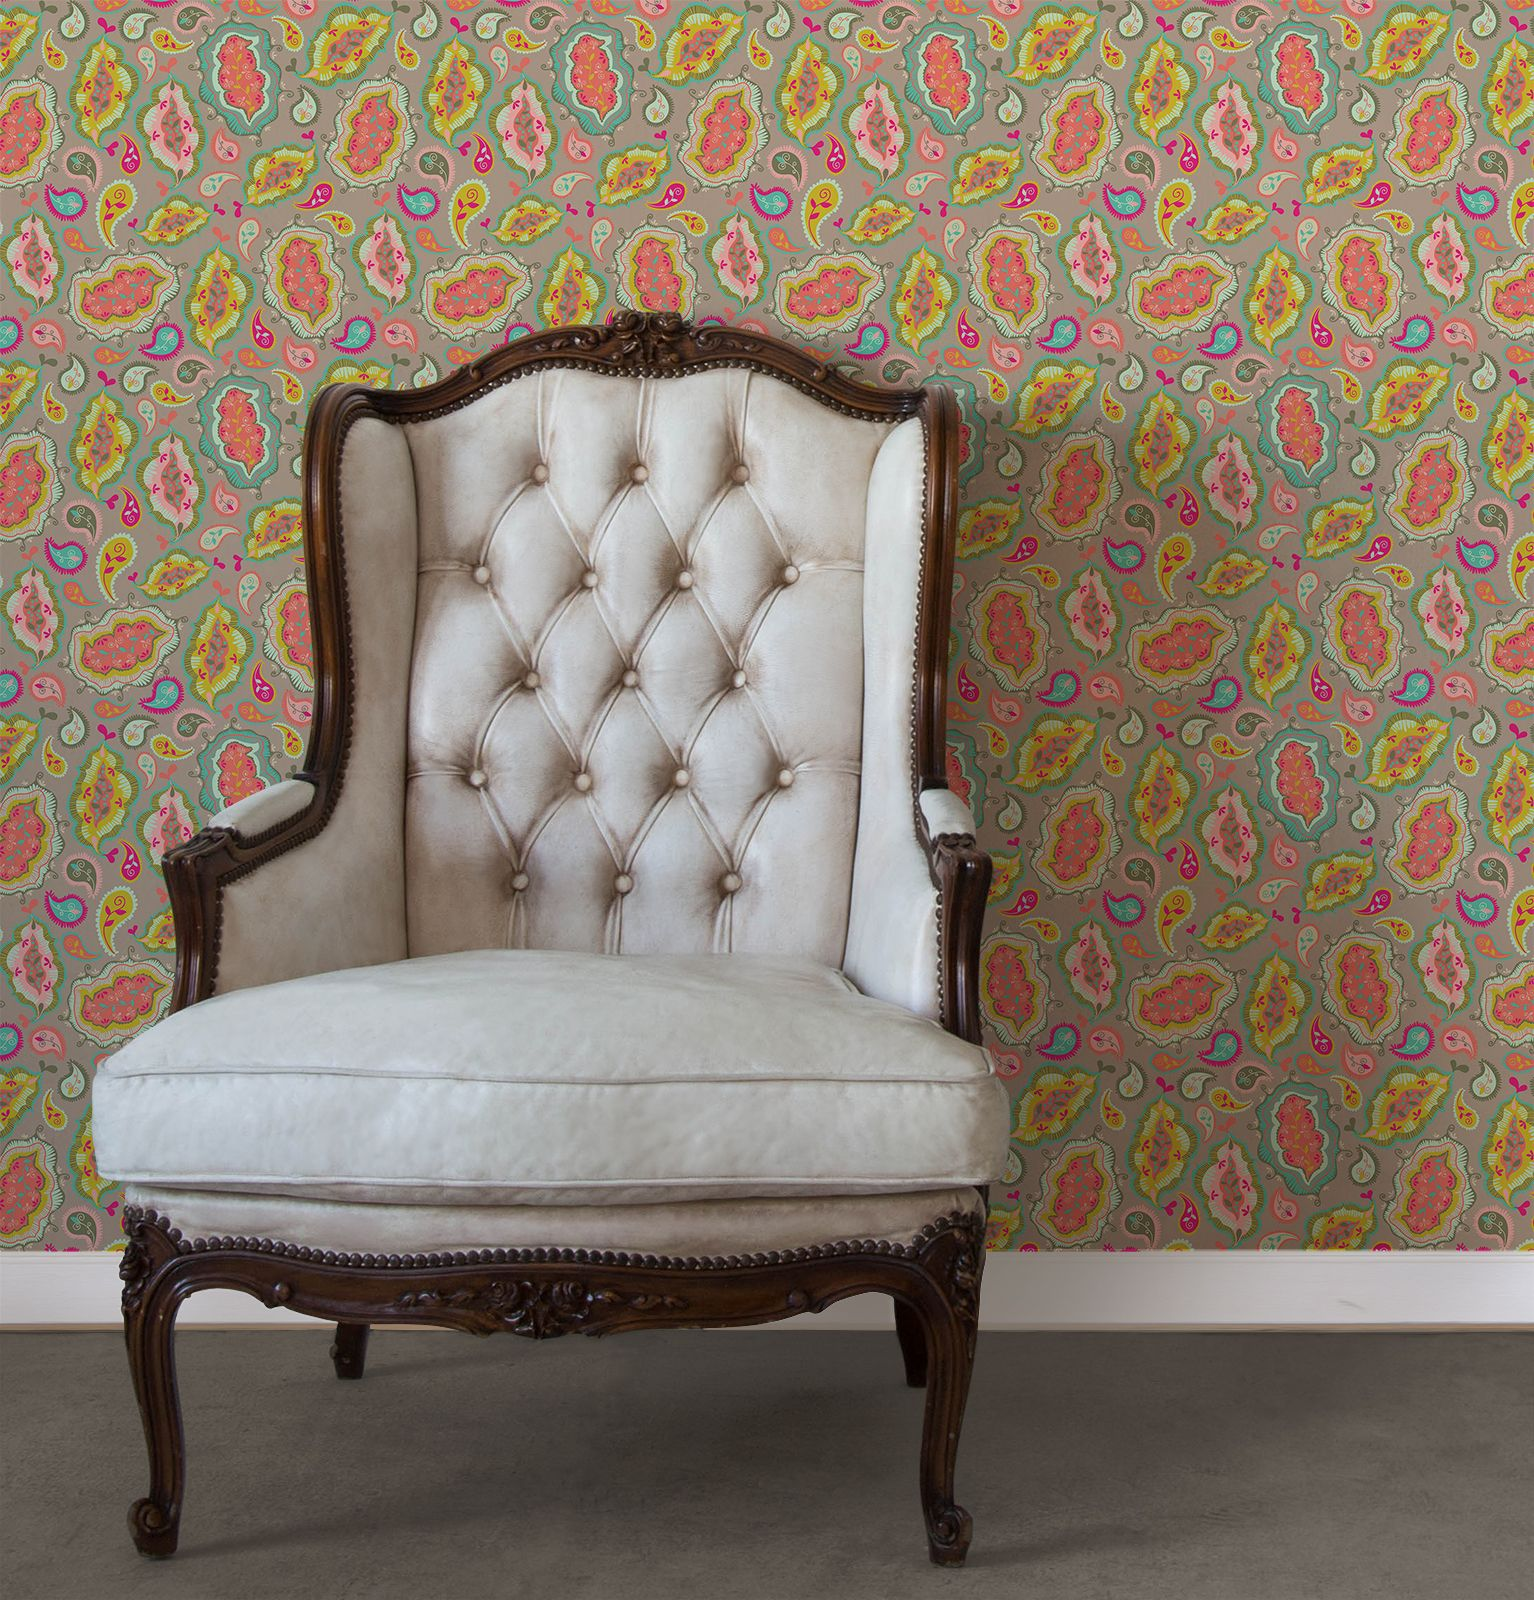 Betterdecoratingbible: The Easiest 2 Minute Makeover With Wallpaper Tiles